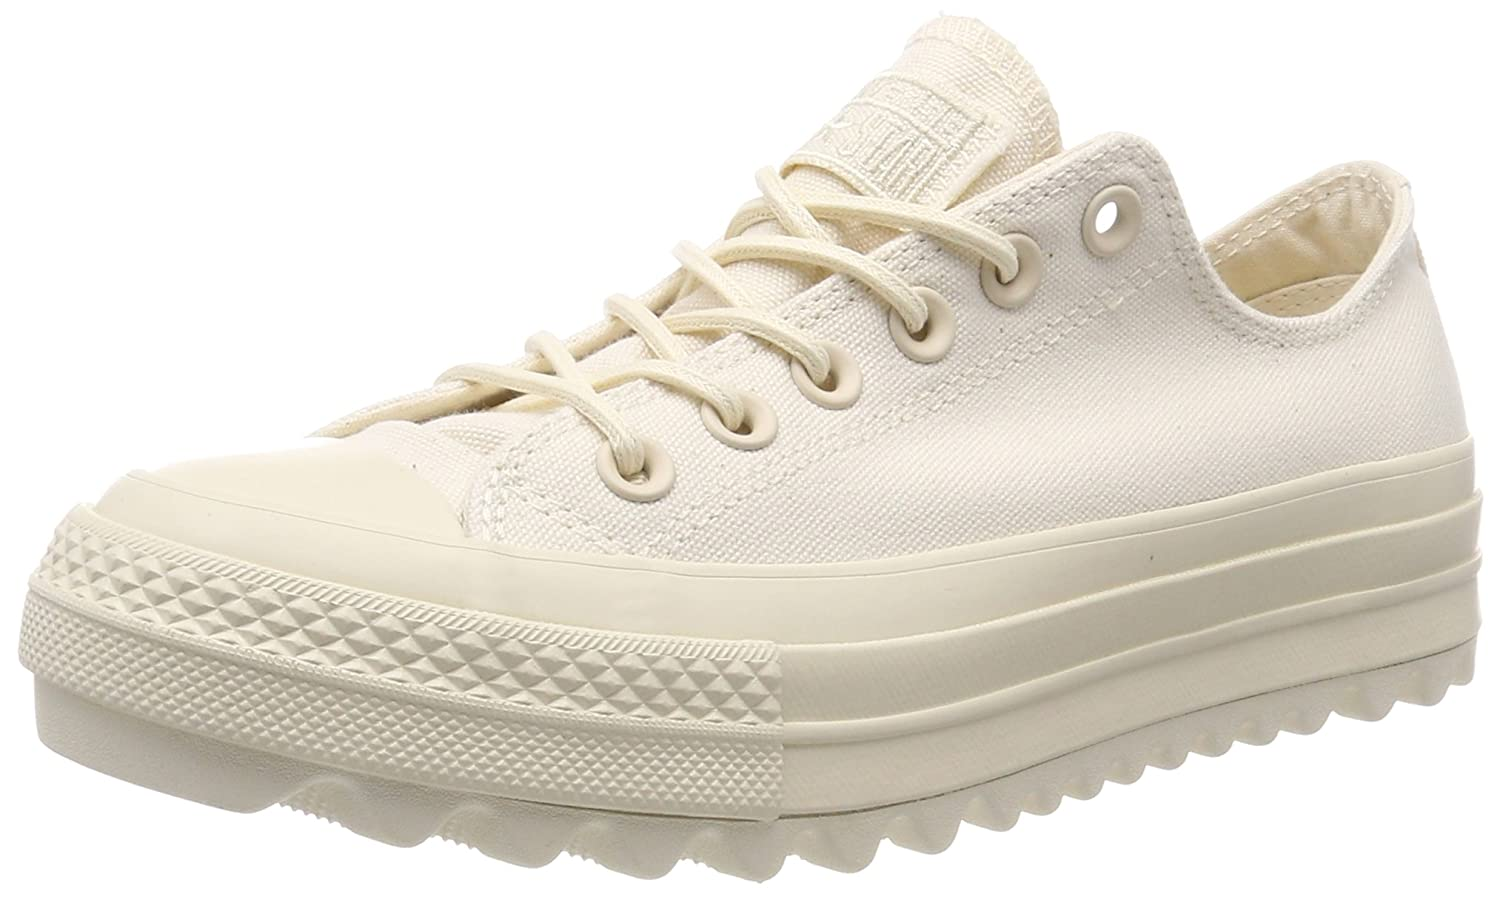 bc2b33732 Amazon.com | Converse All Star Lift Ripple Ox Womens Sneakers Natural |  Fashion Sneakers